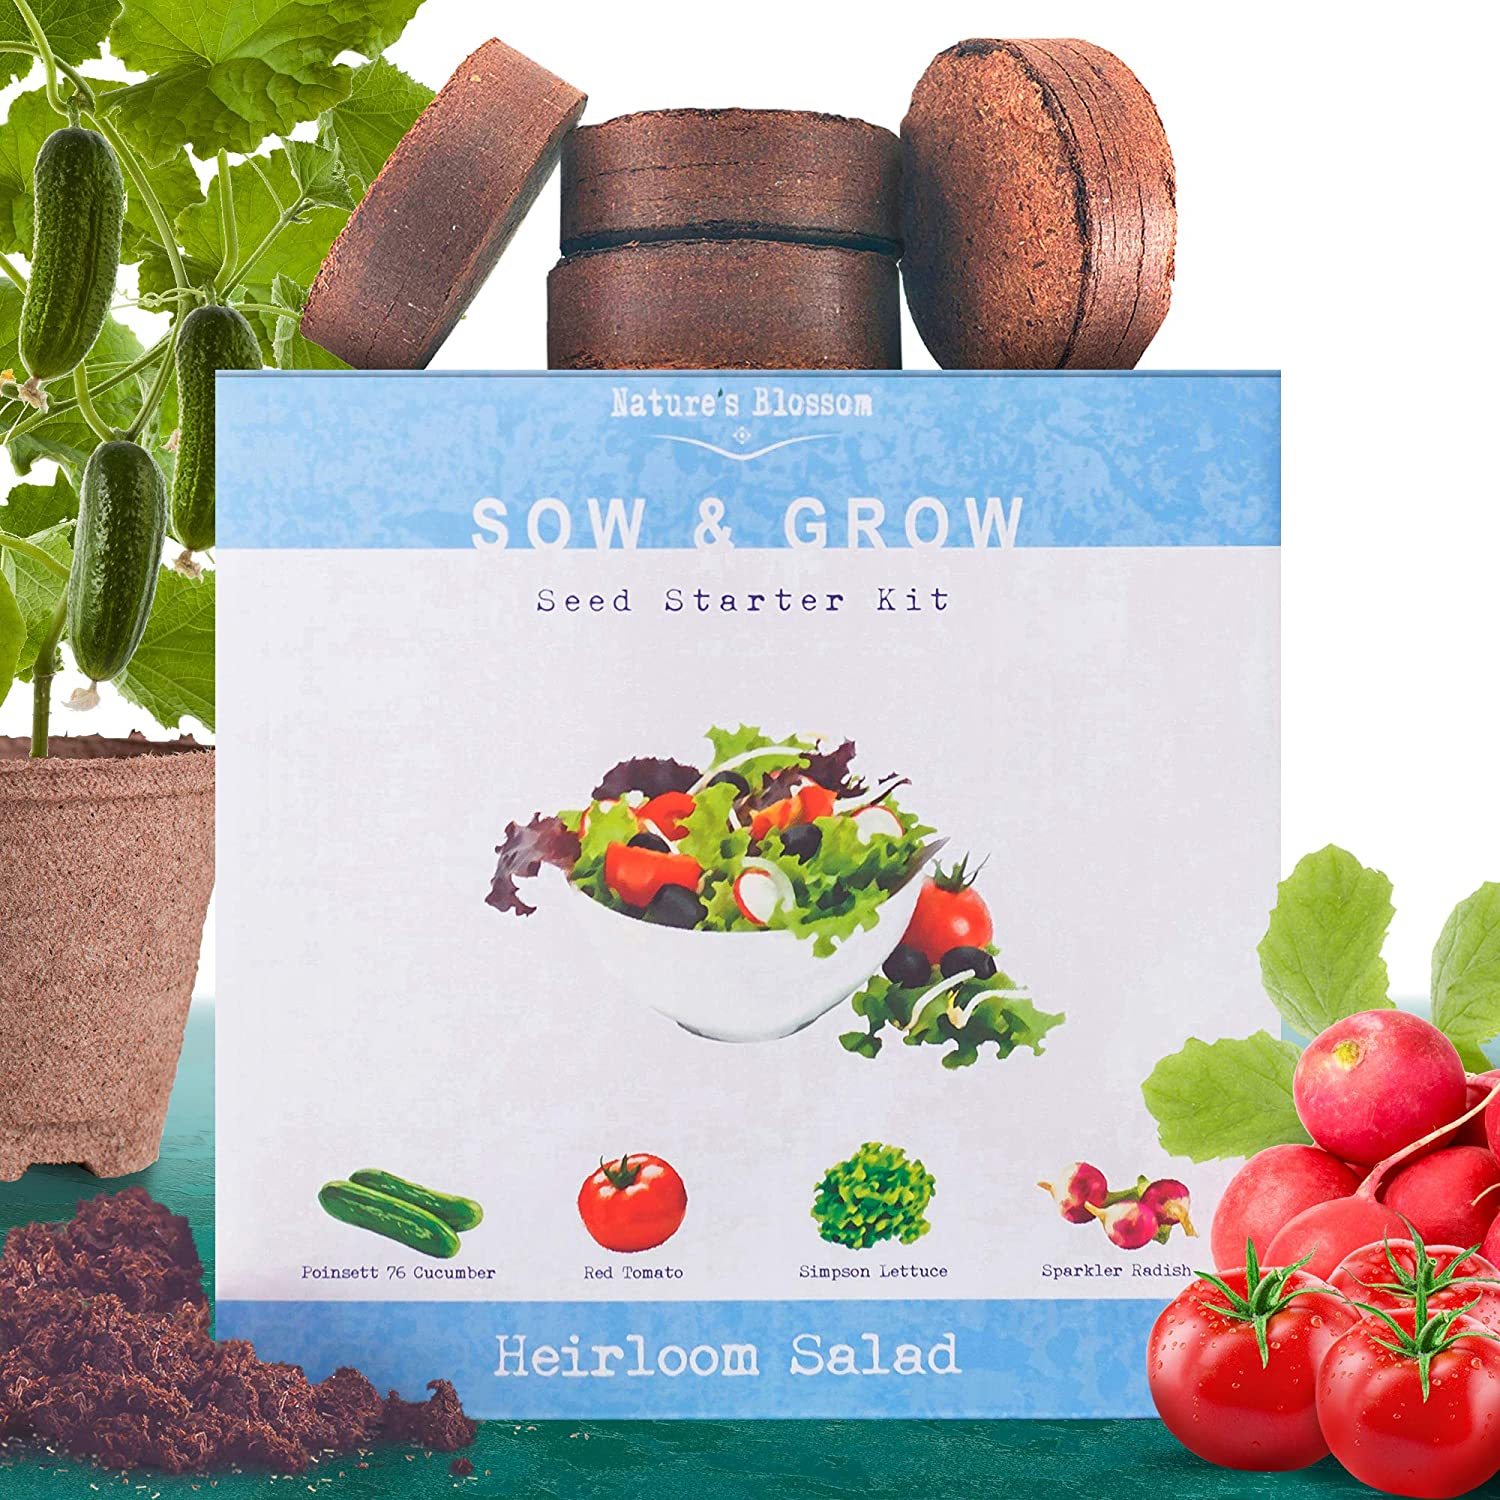 Heirloom Salad Seed Starter Kit - Grow 4 Organic Vegetables from Seeds  Set  Contains Growing Pots, Soil, Plant Labels & Guide  Fun Garden Gift for Men